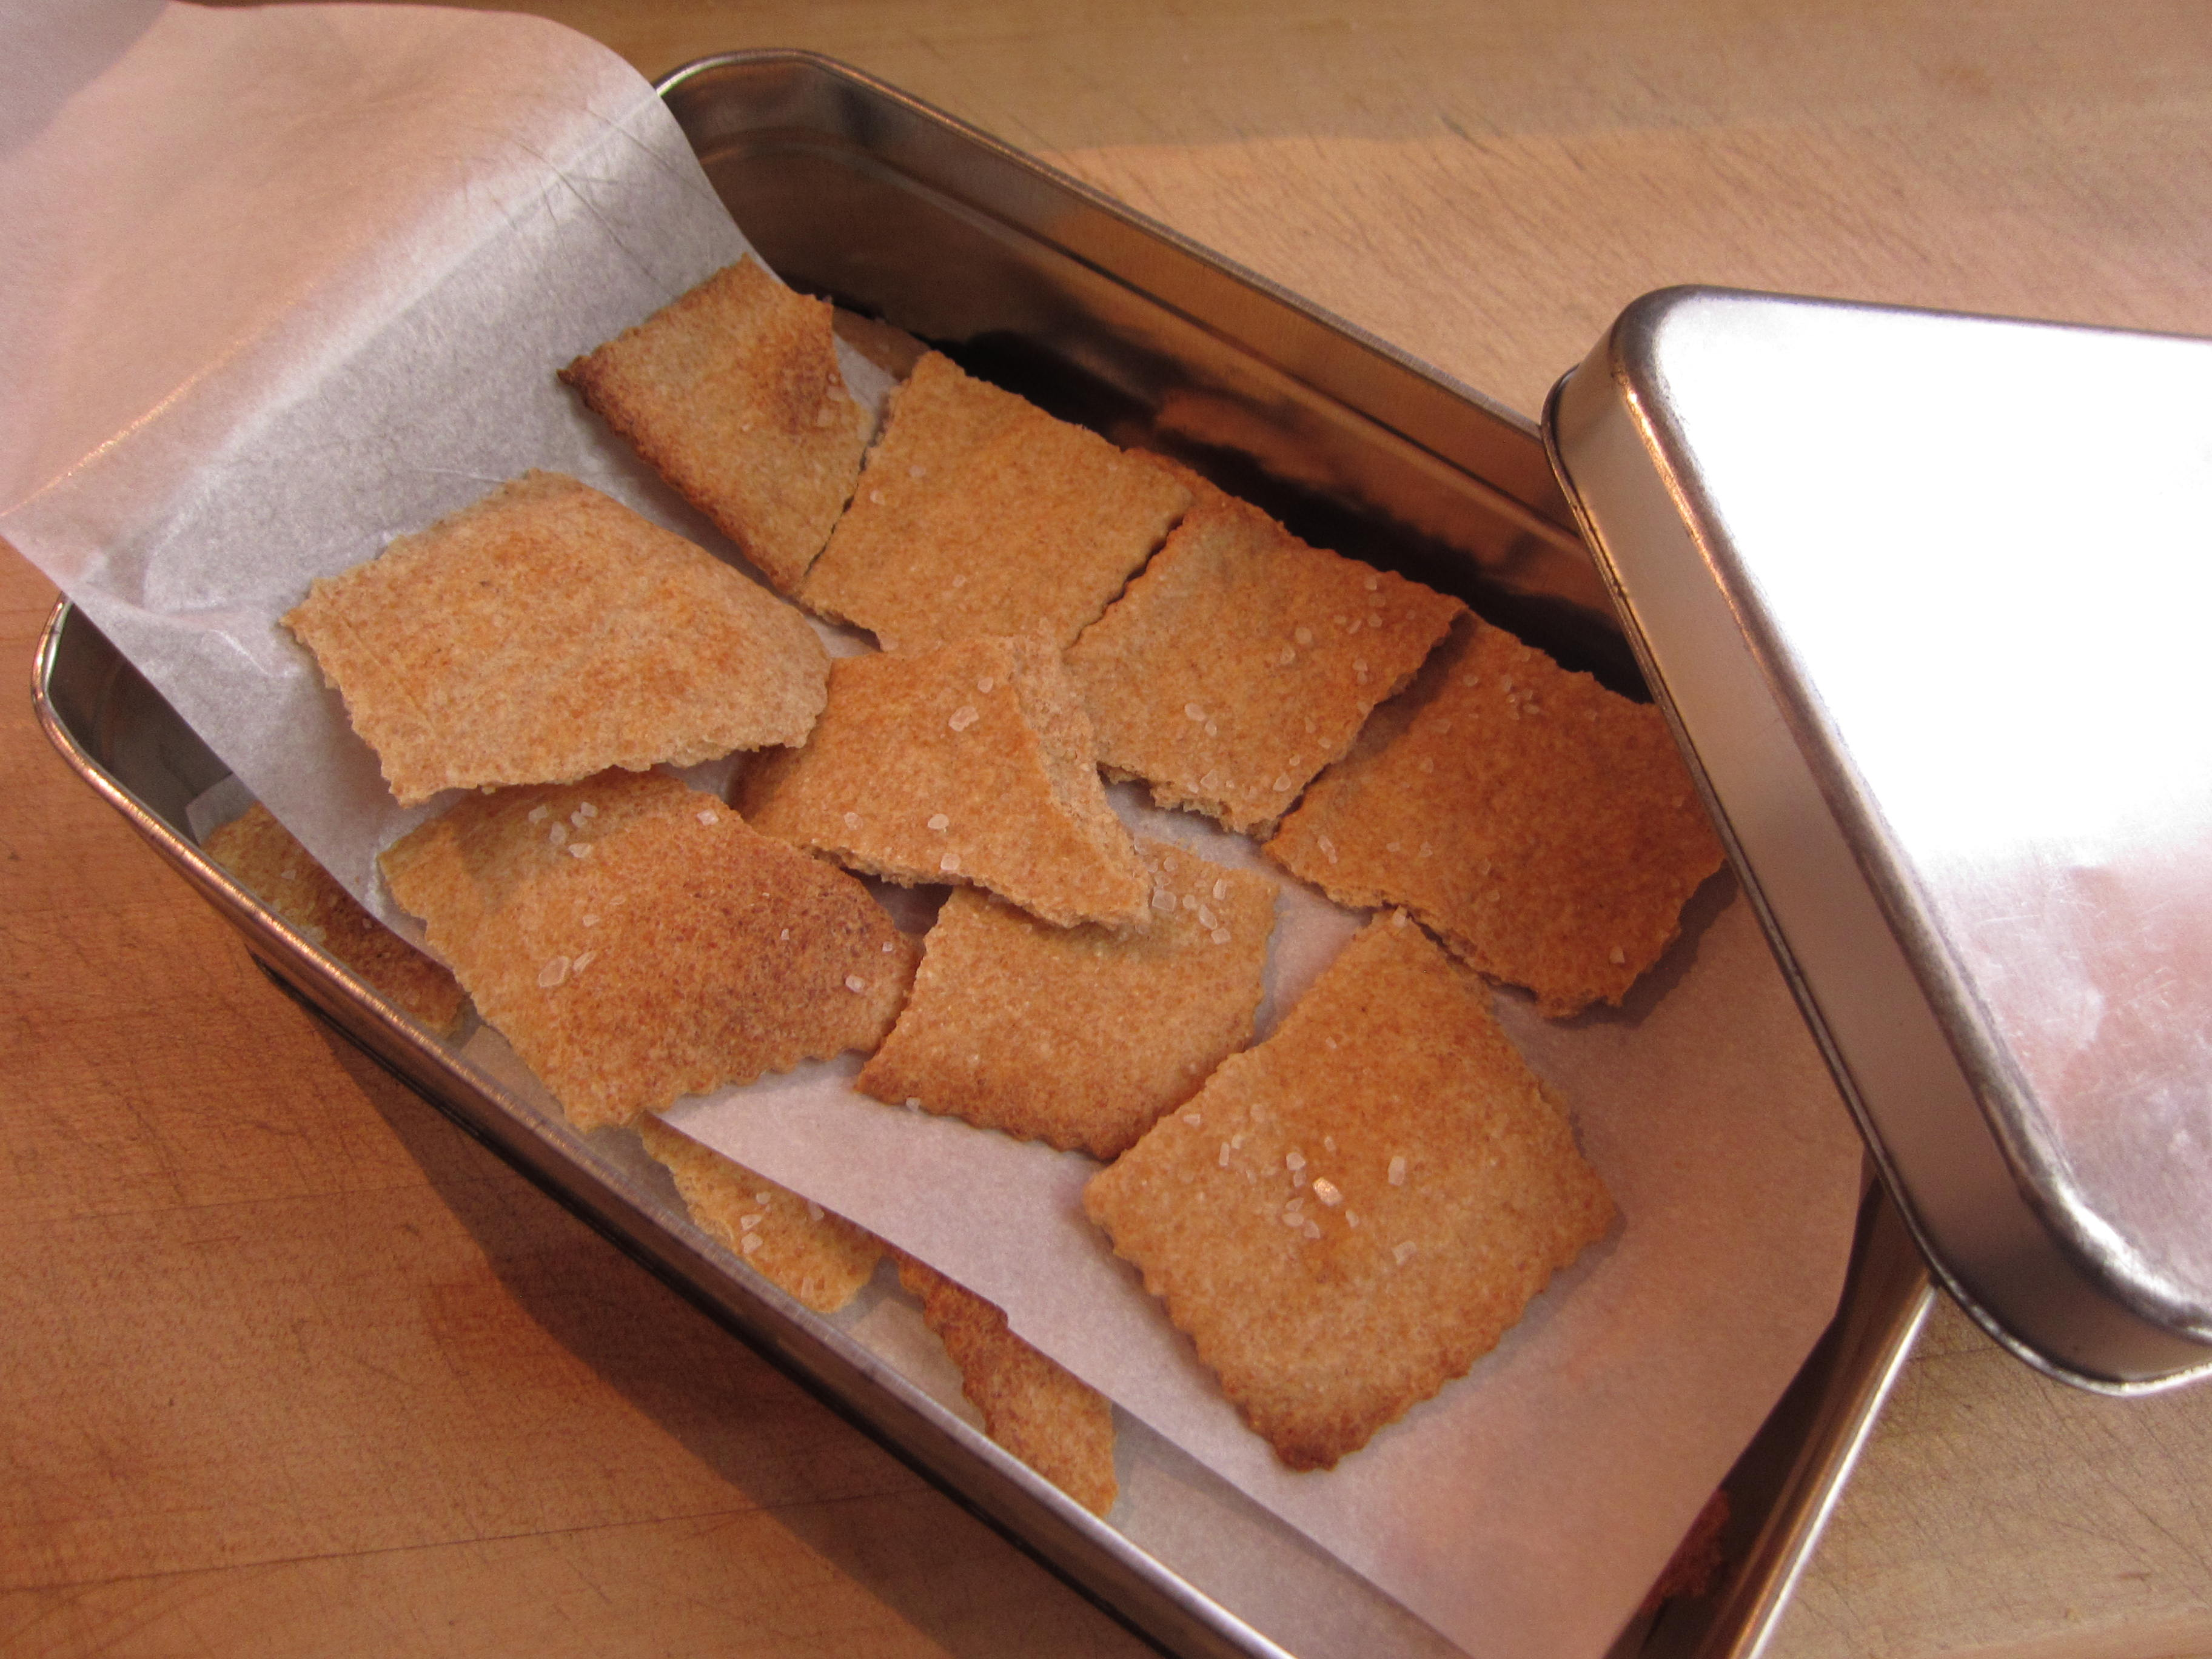 Finished crackers store well in cookie tins. Enjoy them with soft or hard cheese.